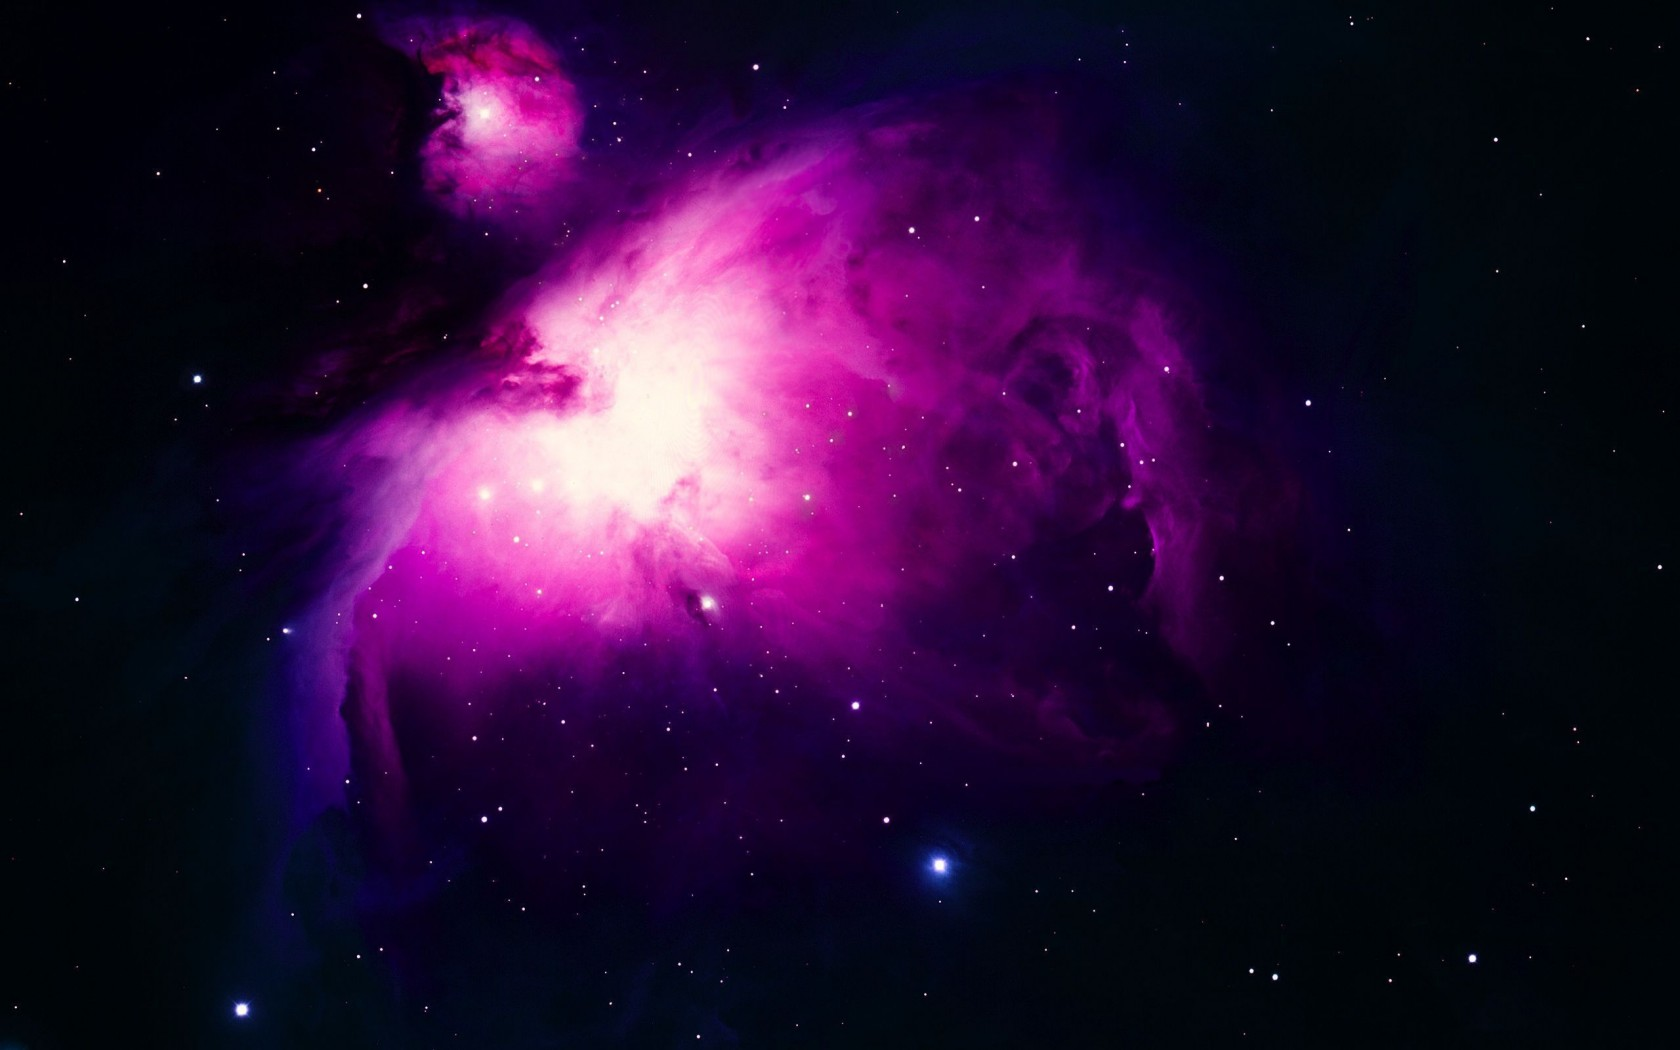 Orion Nebula Wallpaper 2907 Hd Wallpapers in Space   Imagescicom 1680x1050